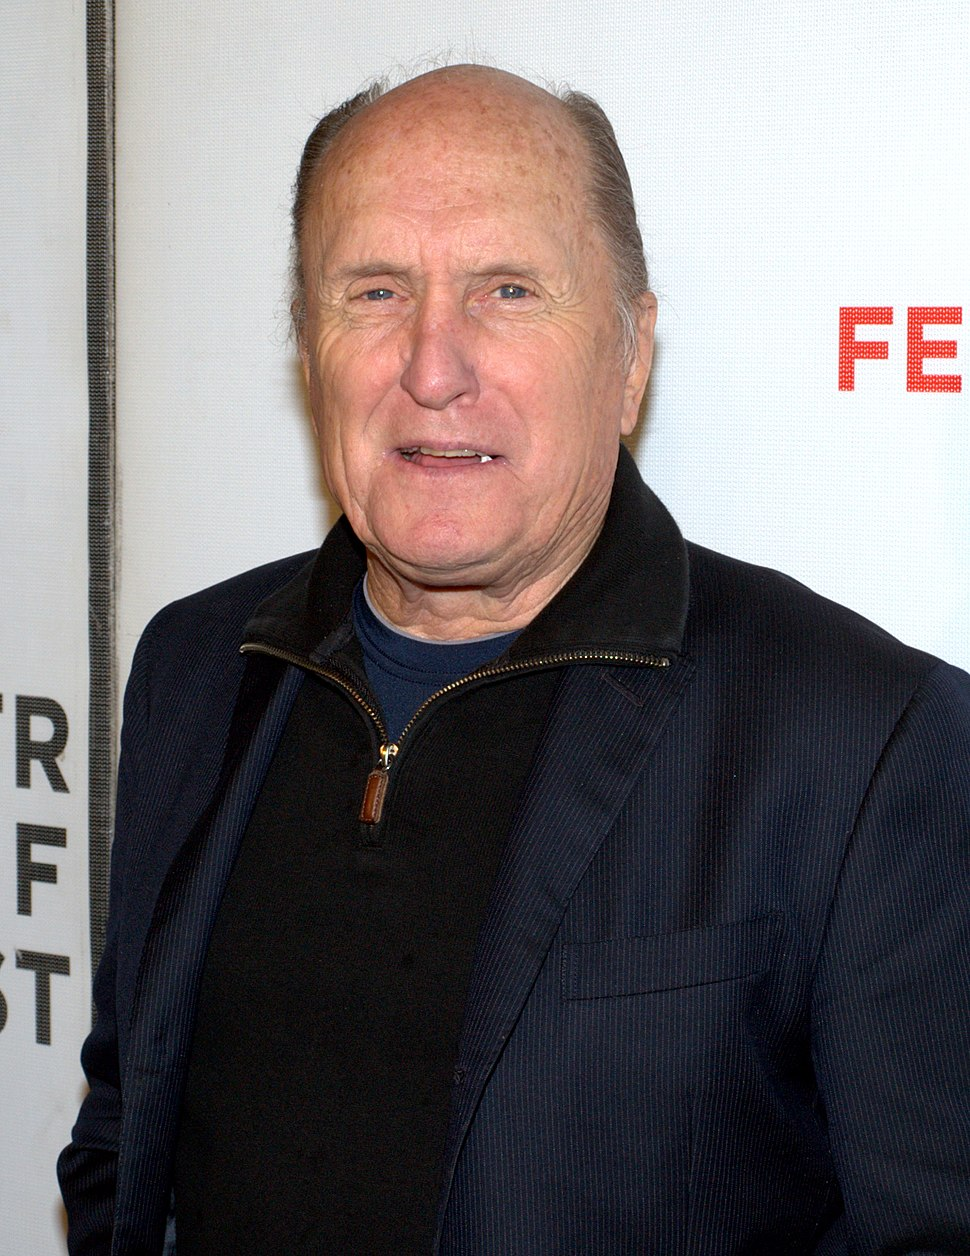 Robert Duvall 2 by David Shankbone